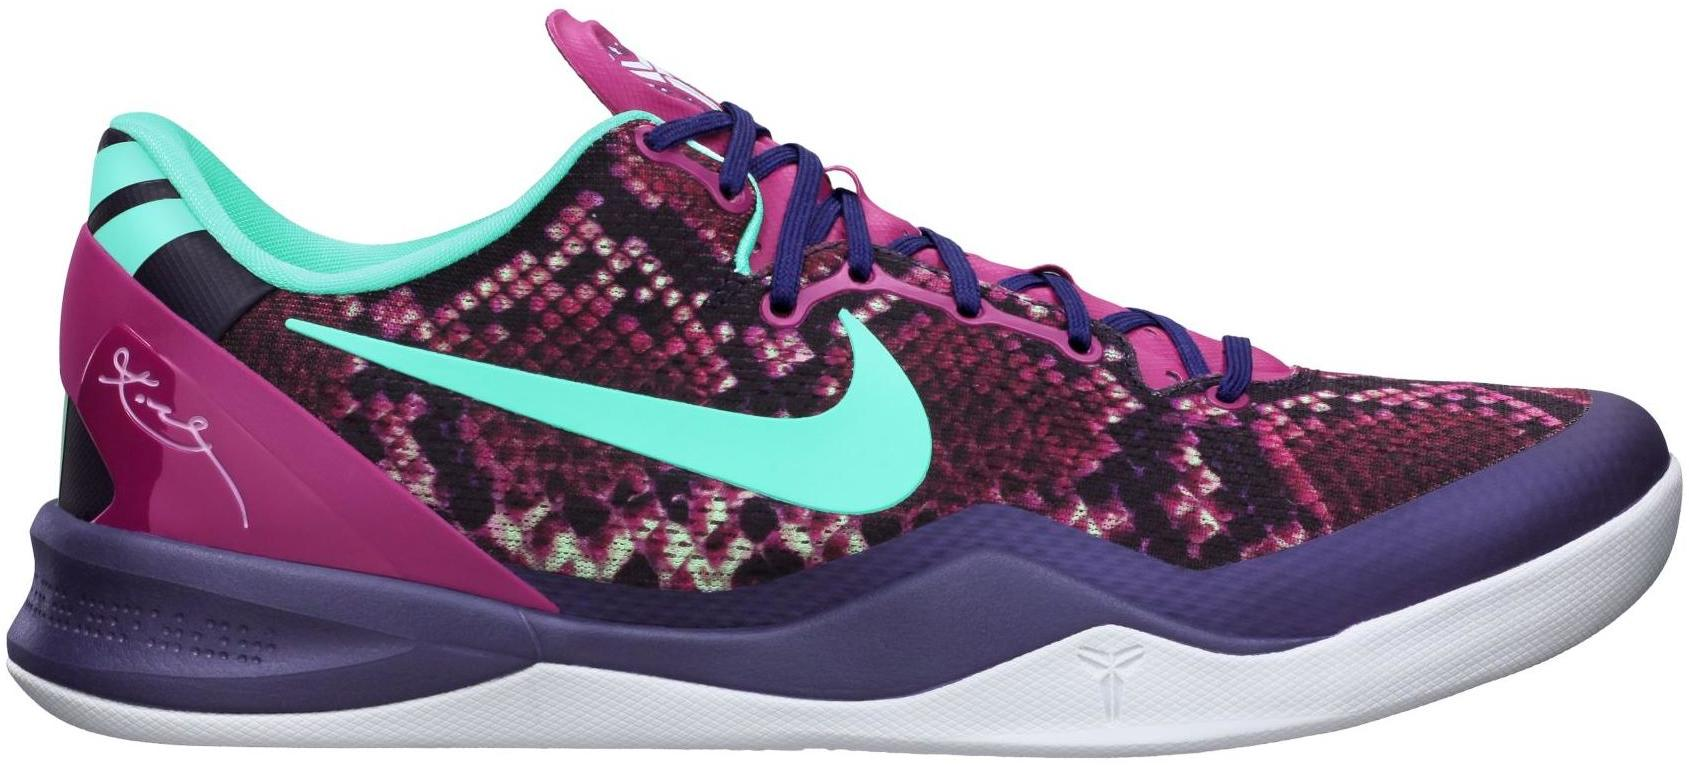 ... wholesale nike kobe 8 shoes total sold 2d72a 2726a ... dbf7bc3a0e